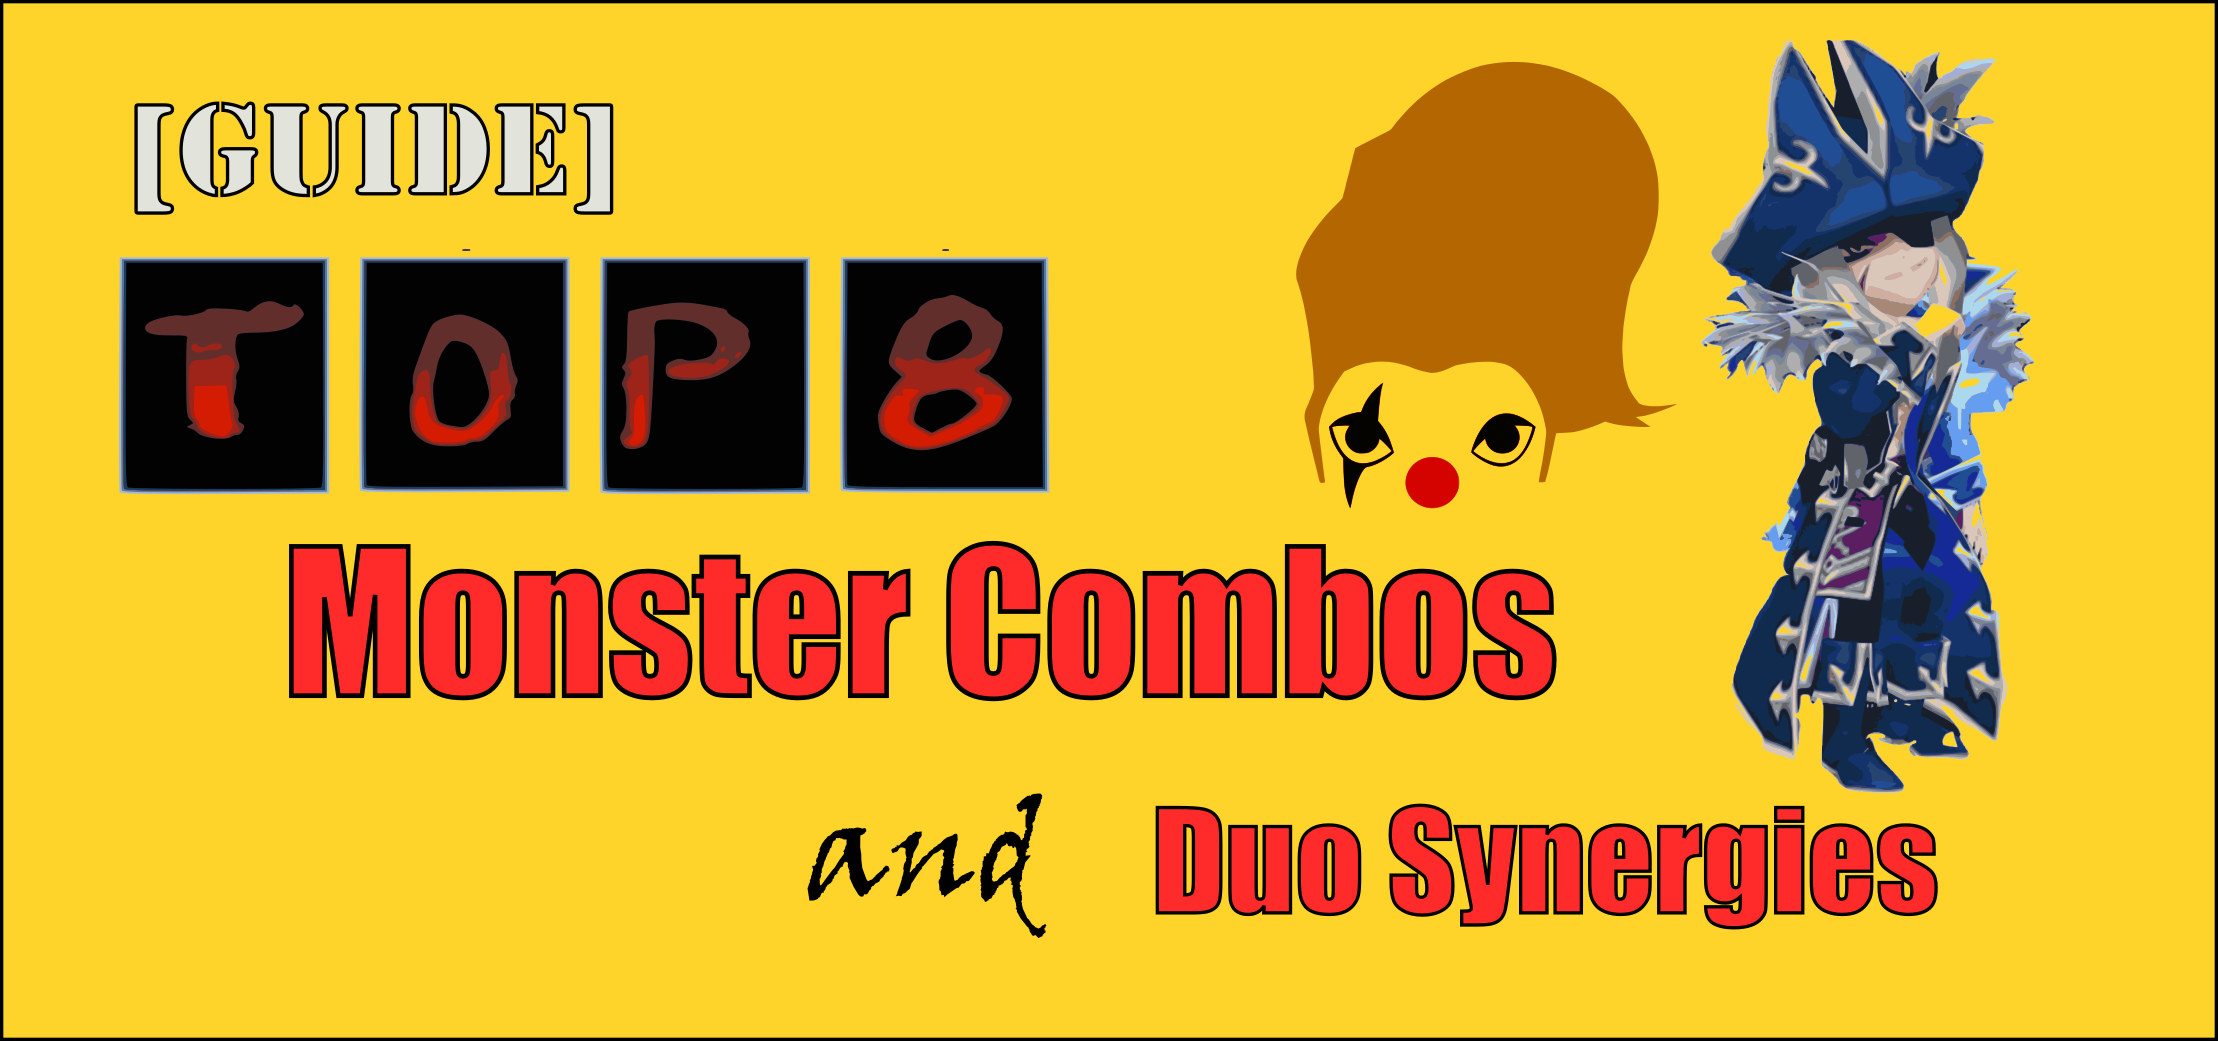 Guide Top 8 Monsters Combos And Duo Synergies